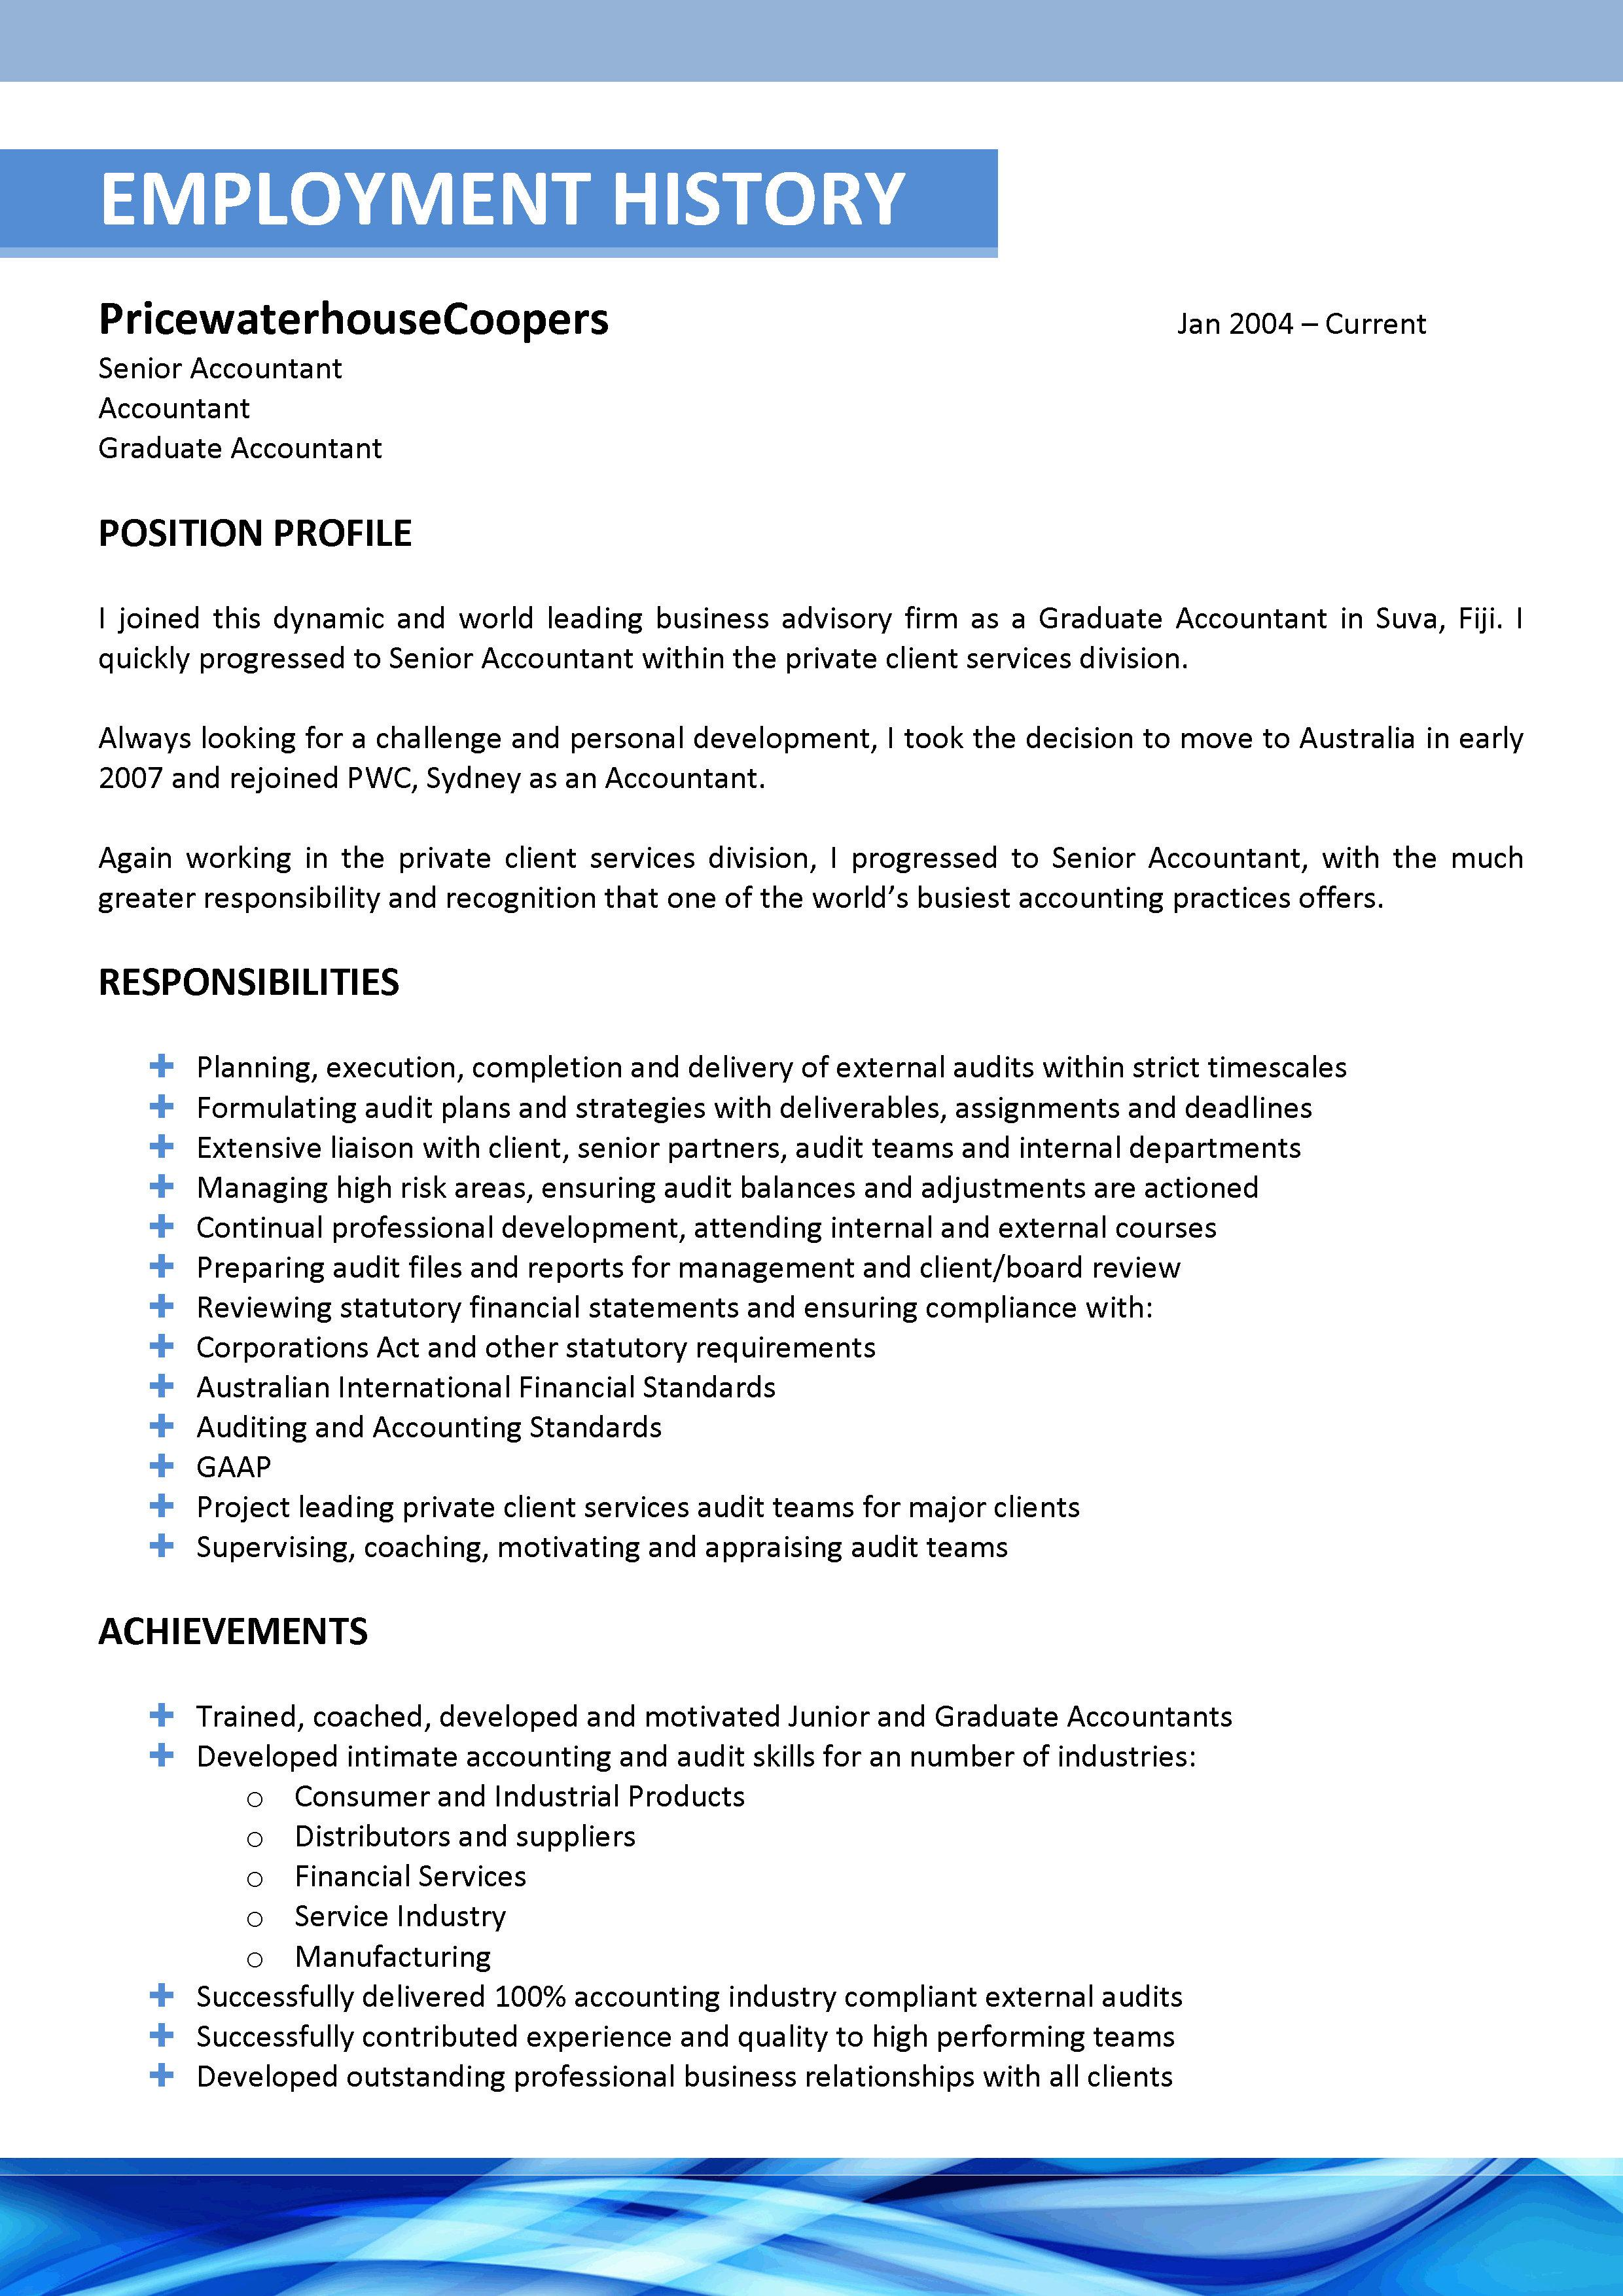 Sampe Resume We Can Help With Professional Resume Writing Resume